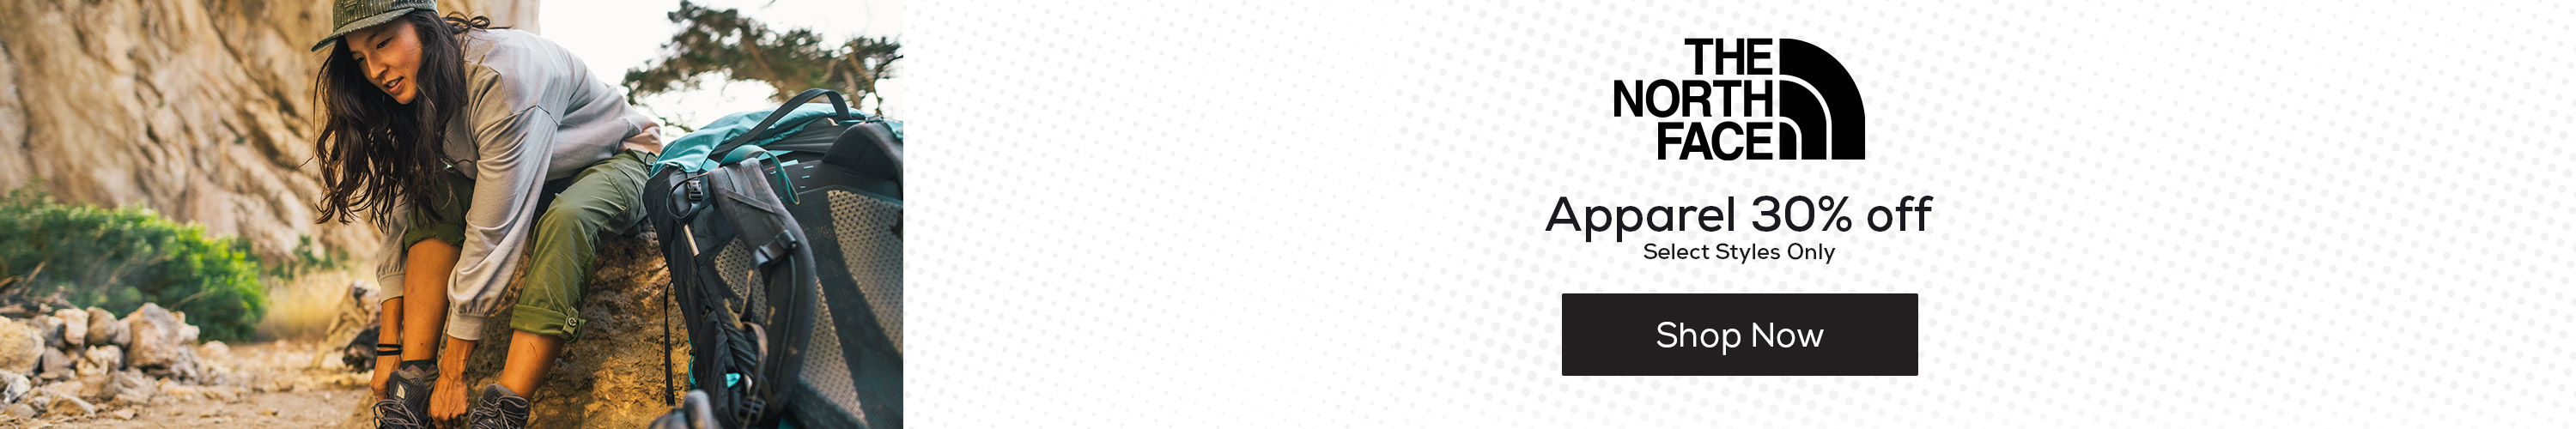 The North Face Apparel 30% Off